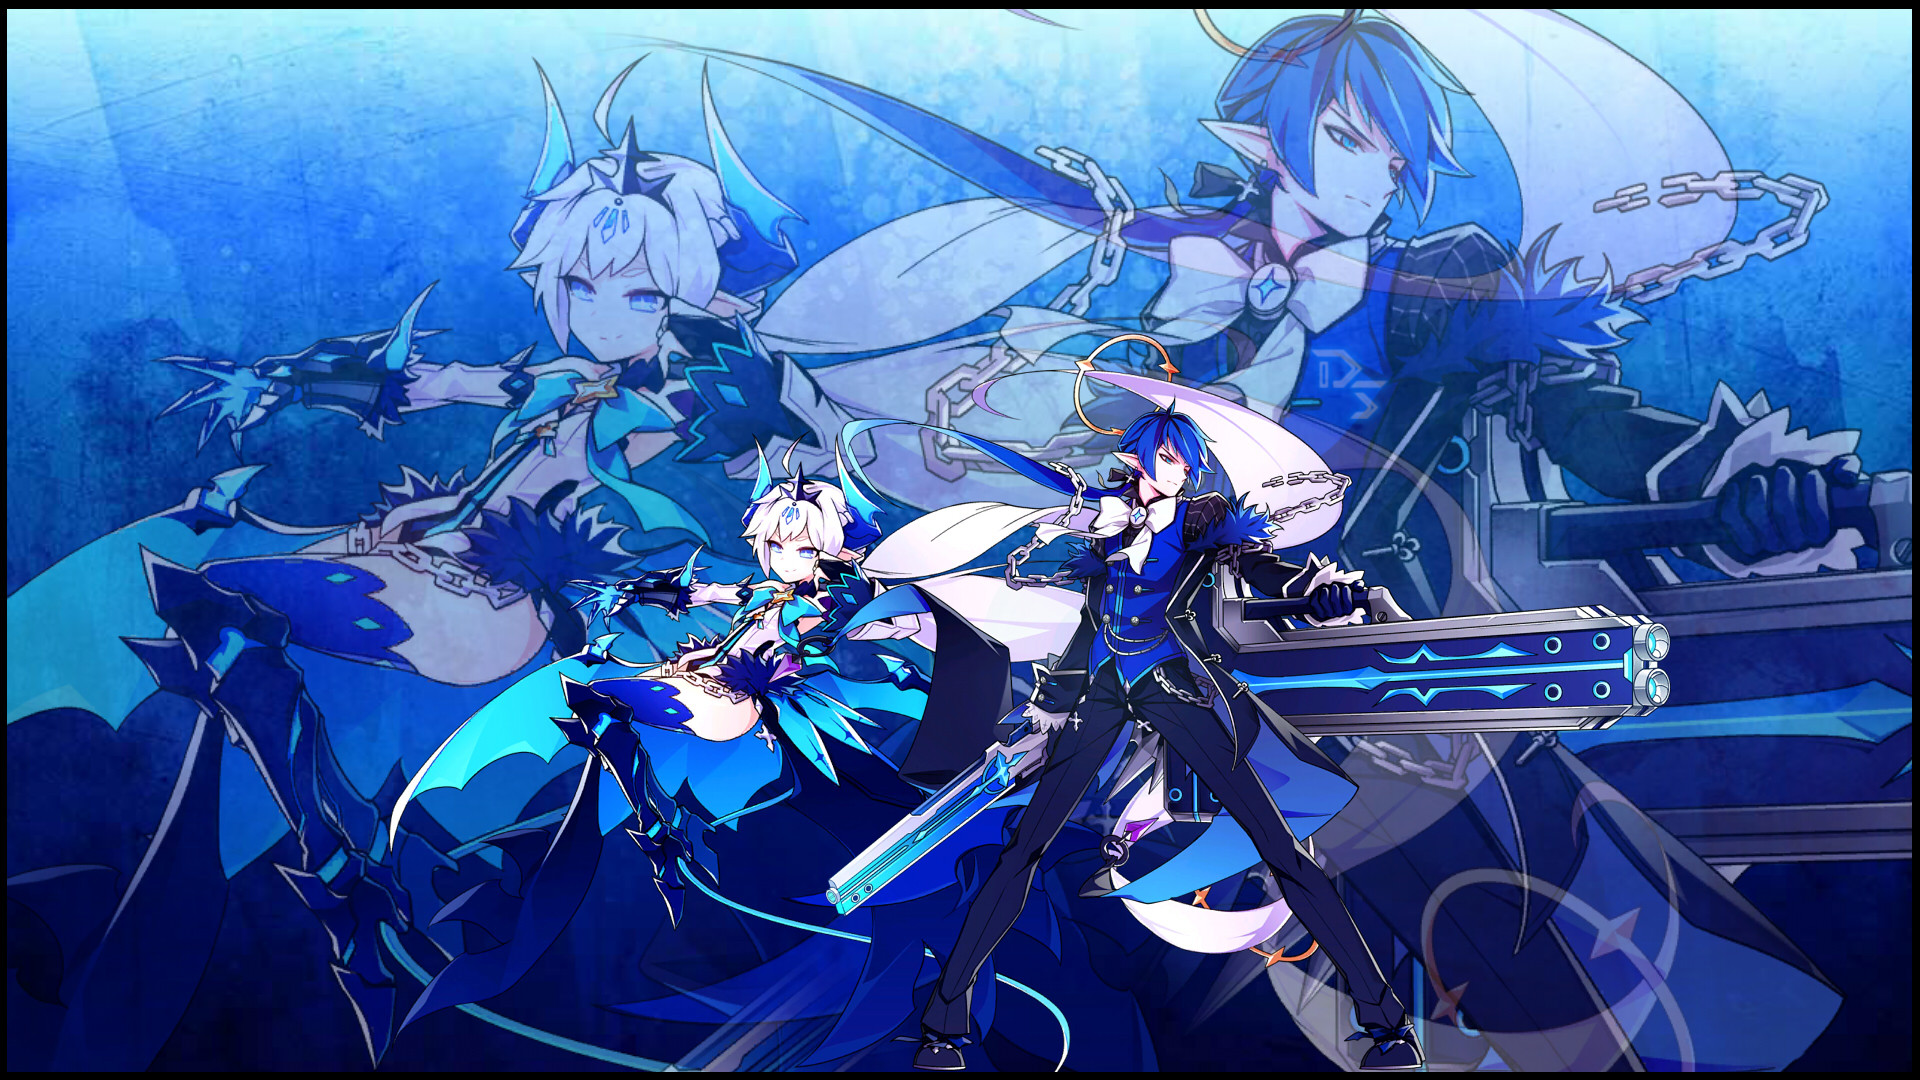 1920x1080 ... Lu/Ciel Nobless/Royal Guard Wallpaper By D.S. by DelayedShot